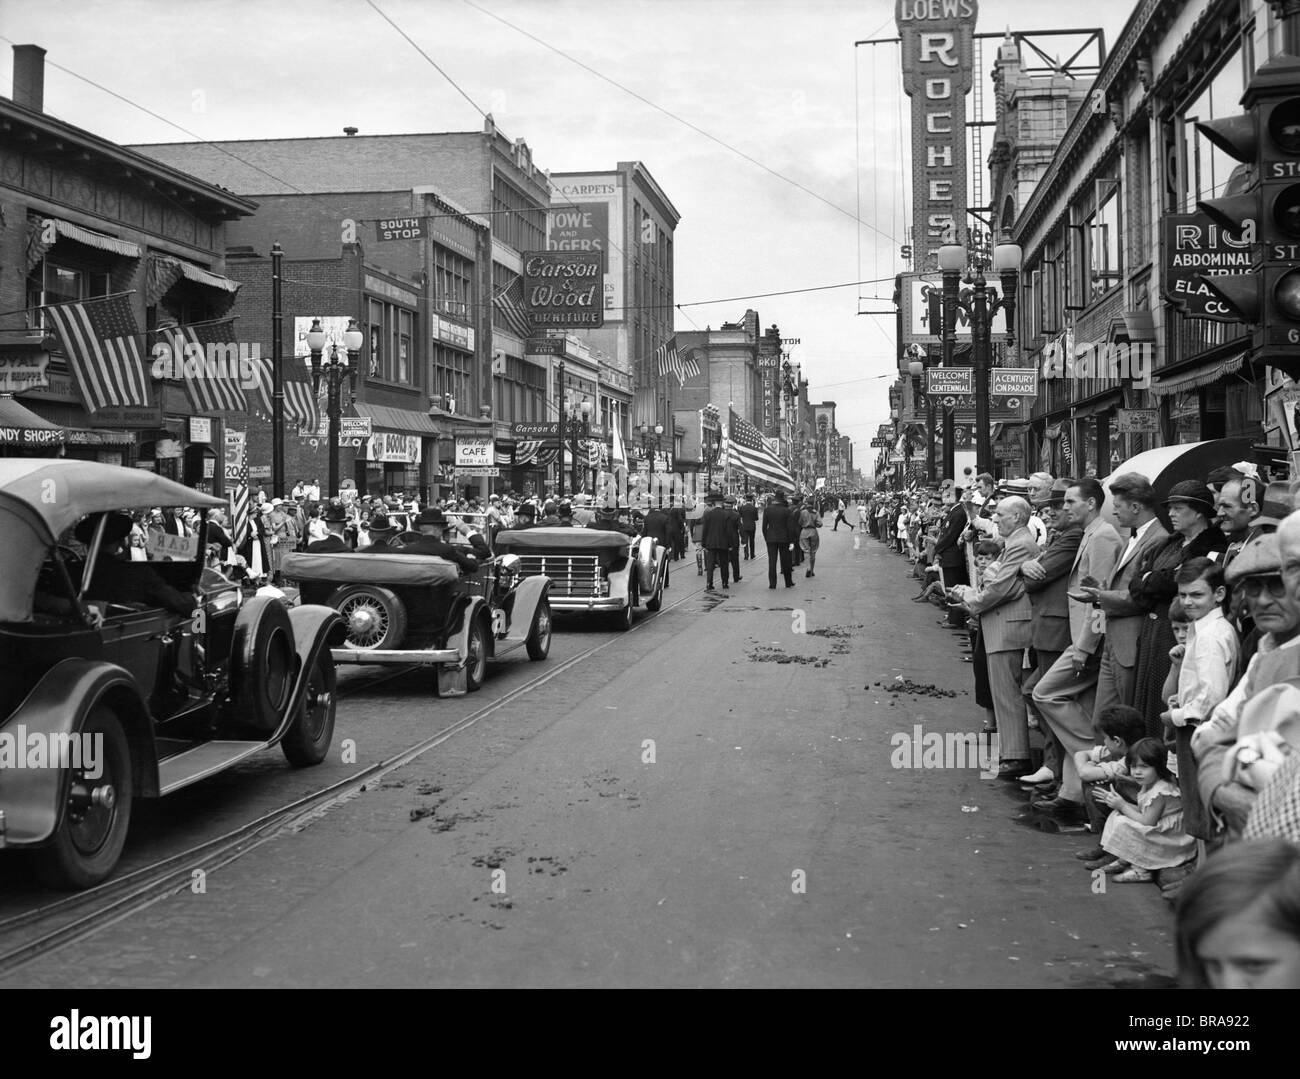 1930s 1934 GRAND ARMY OF THE REPUBLIC CIVIL WAR VETERANS JOIN PARADE DOWN MAIN STREET DURING ROCHESTER NEW YORK - Stock Image